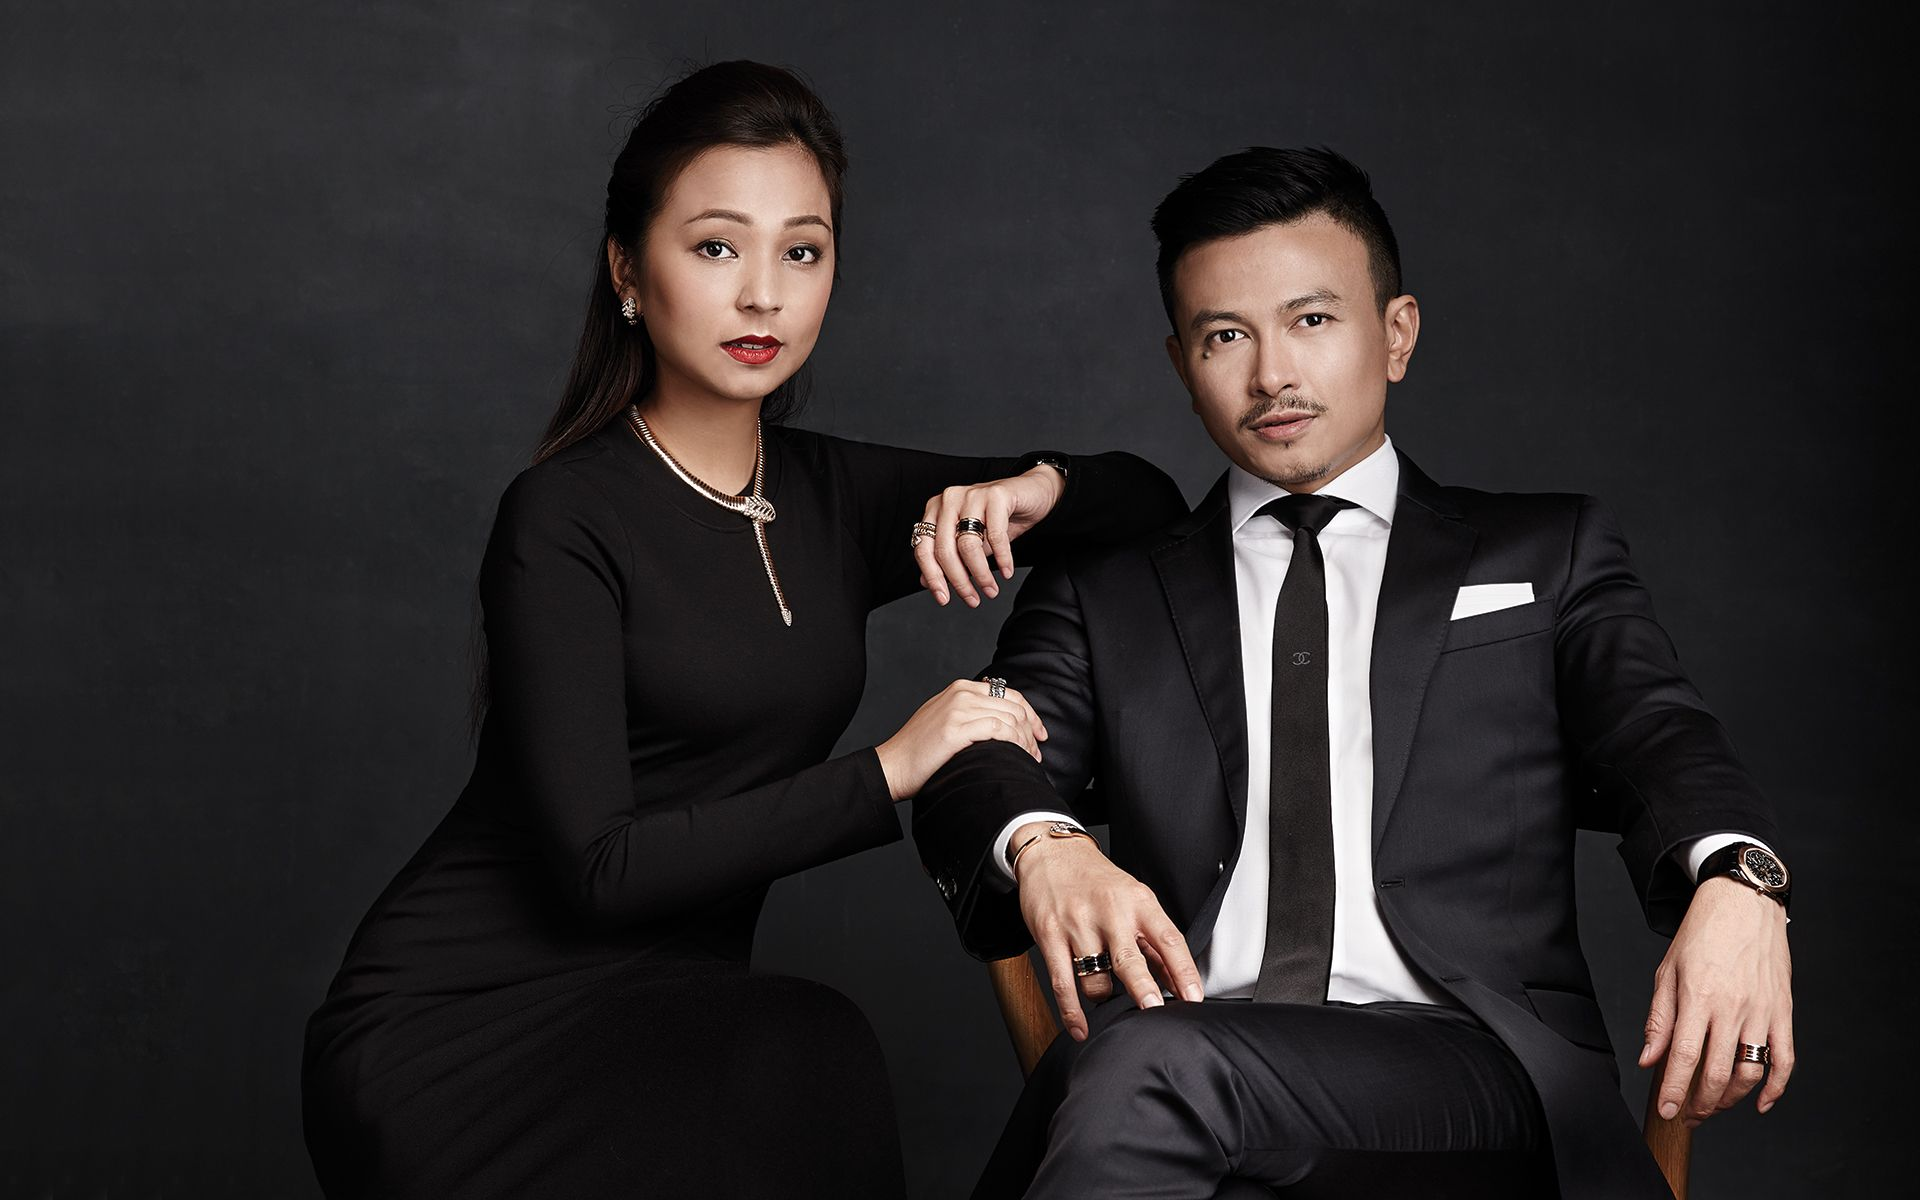 Couple Spotlight: How Far Jovian Mandagie & Nina Ismail Sabri Have Come, From Lovers To Parents